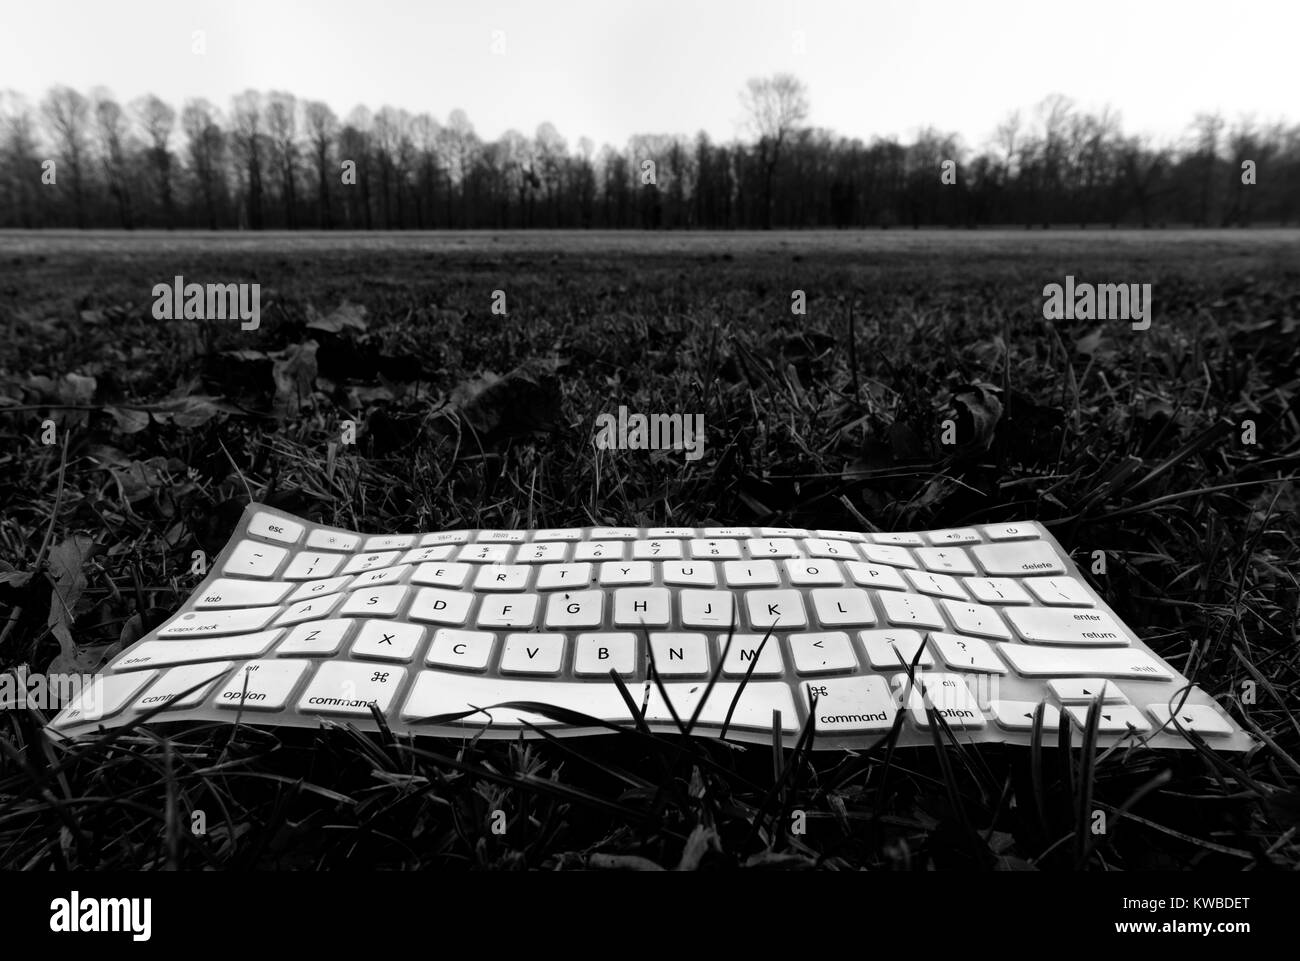 Computer keyboard lying on a lawn - Stock Image